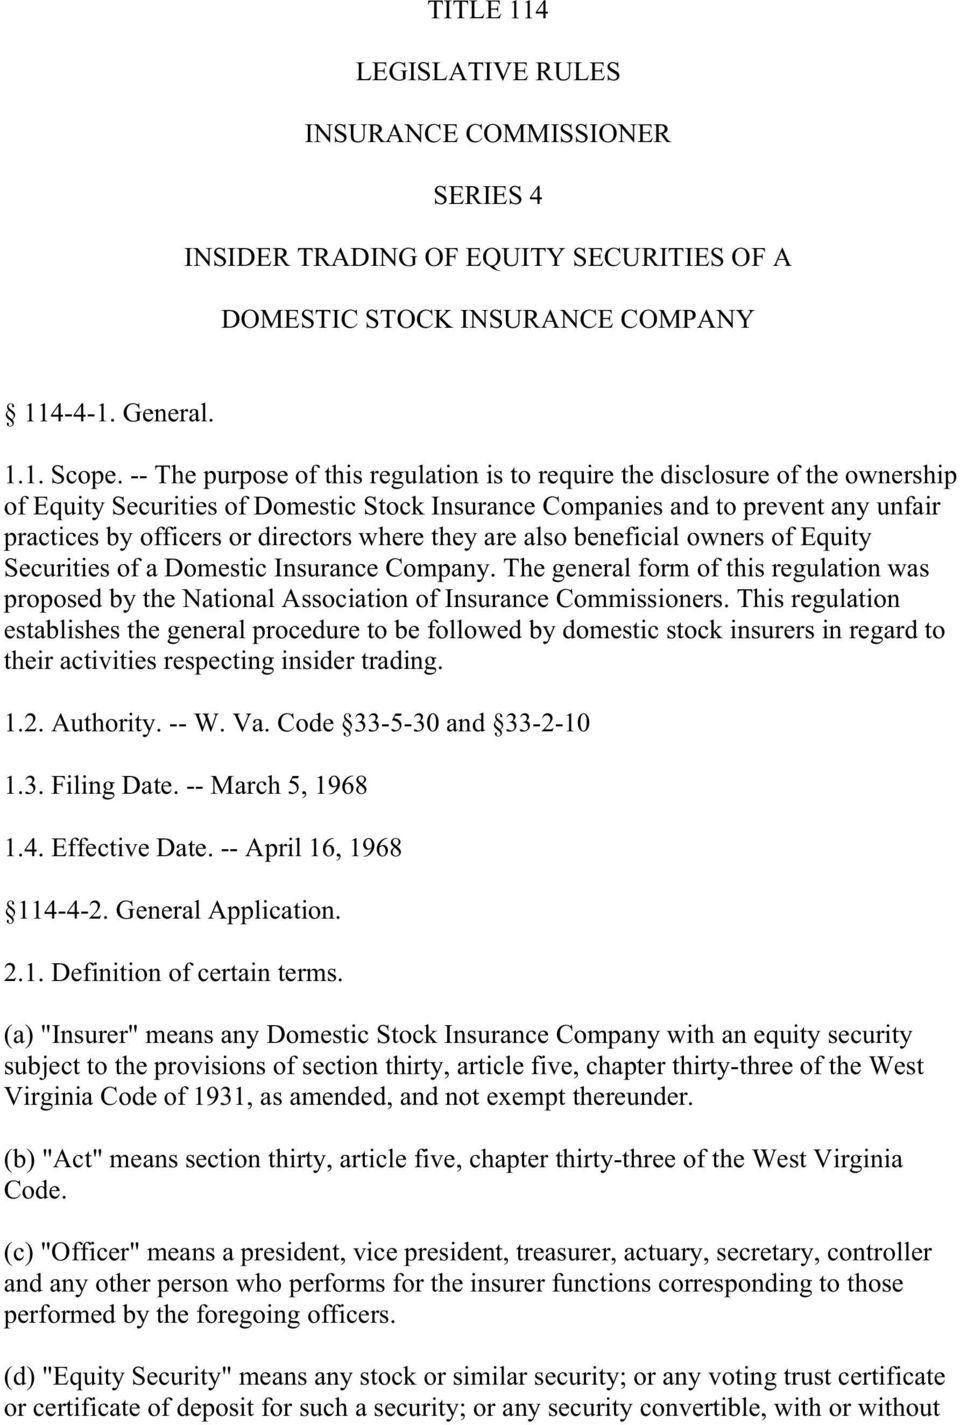 where they are also beneficial owners of Equity Securities of a Domestic Insurance Company. The general form of this regulation was proposed by the National Association of Insurance Commissioners.